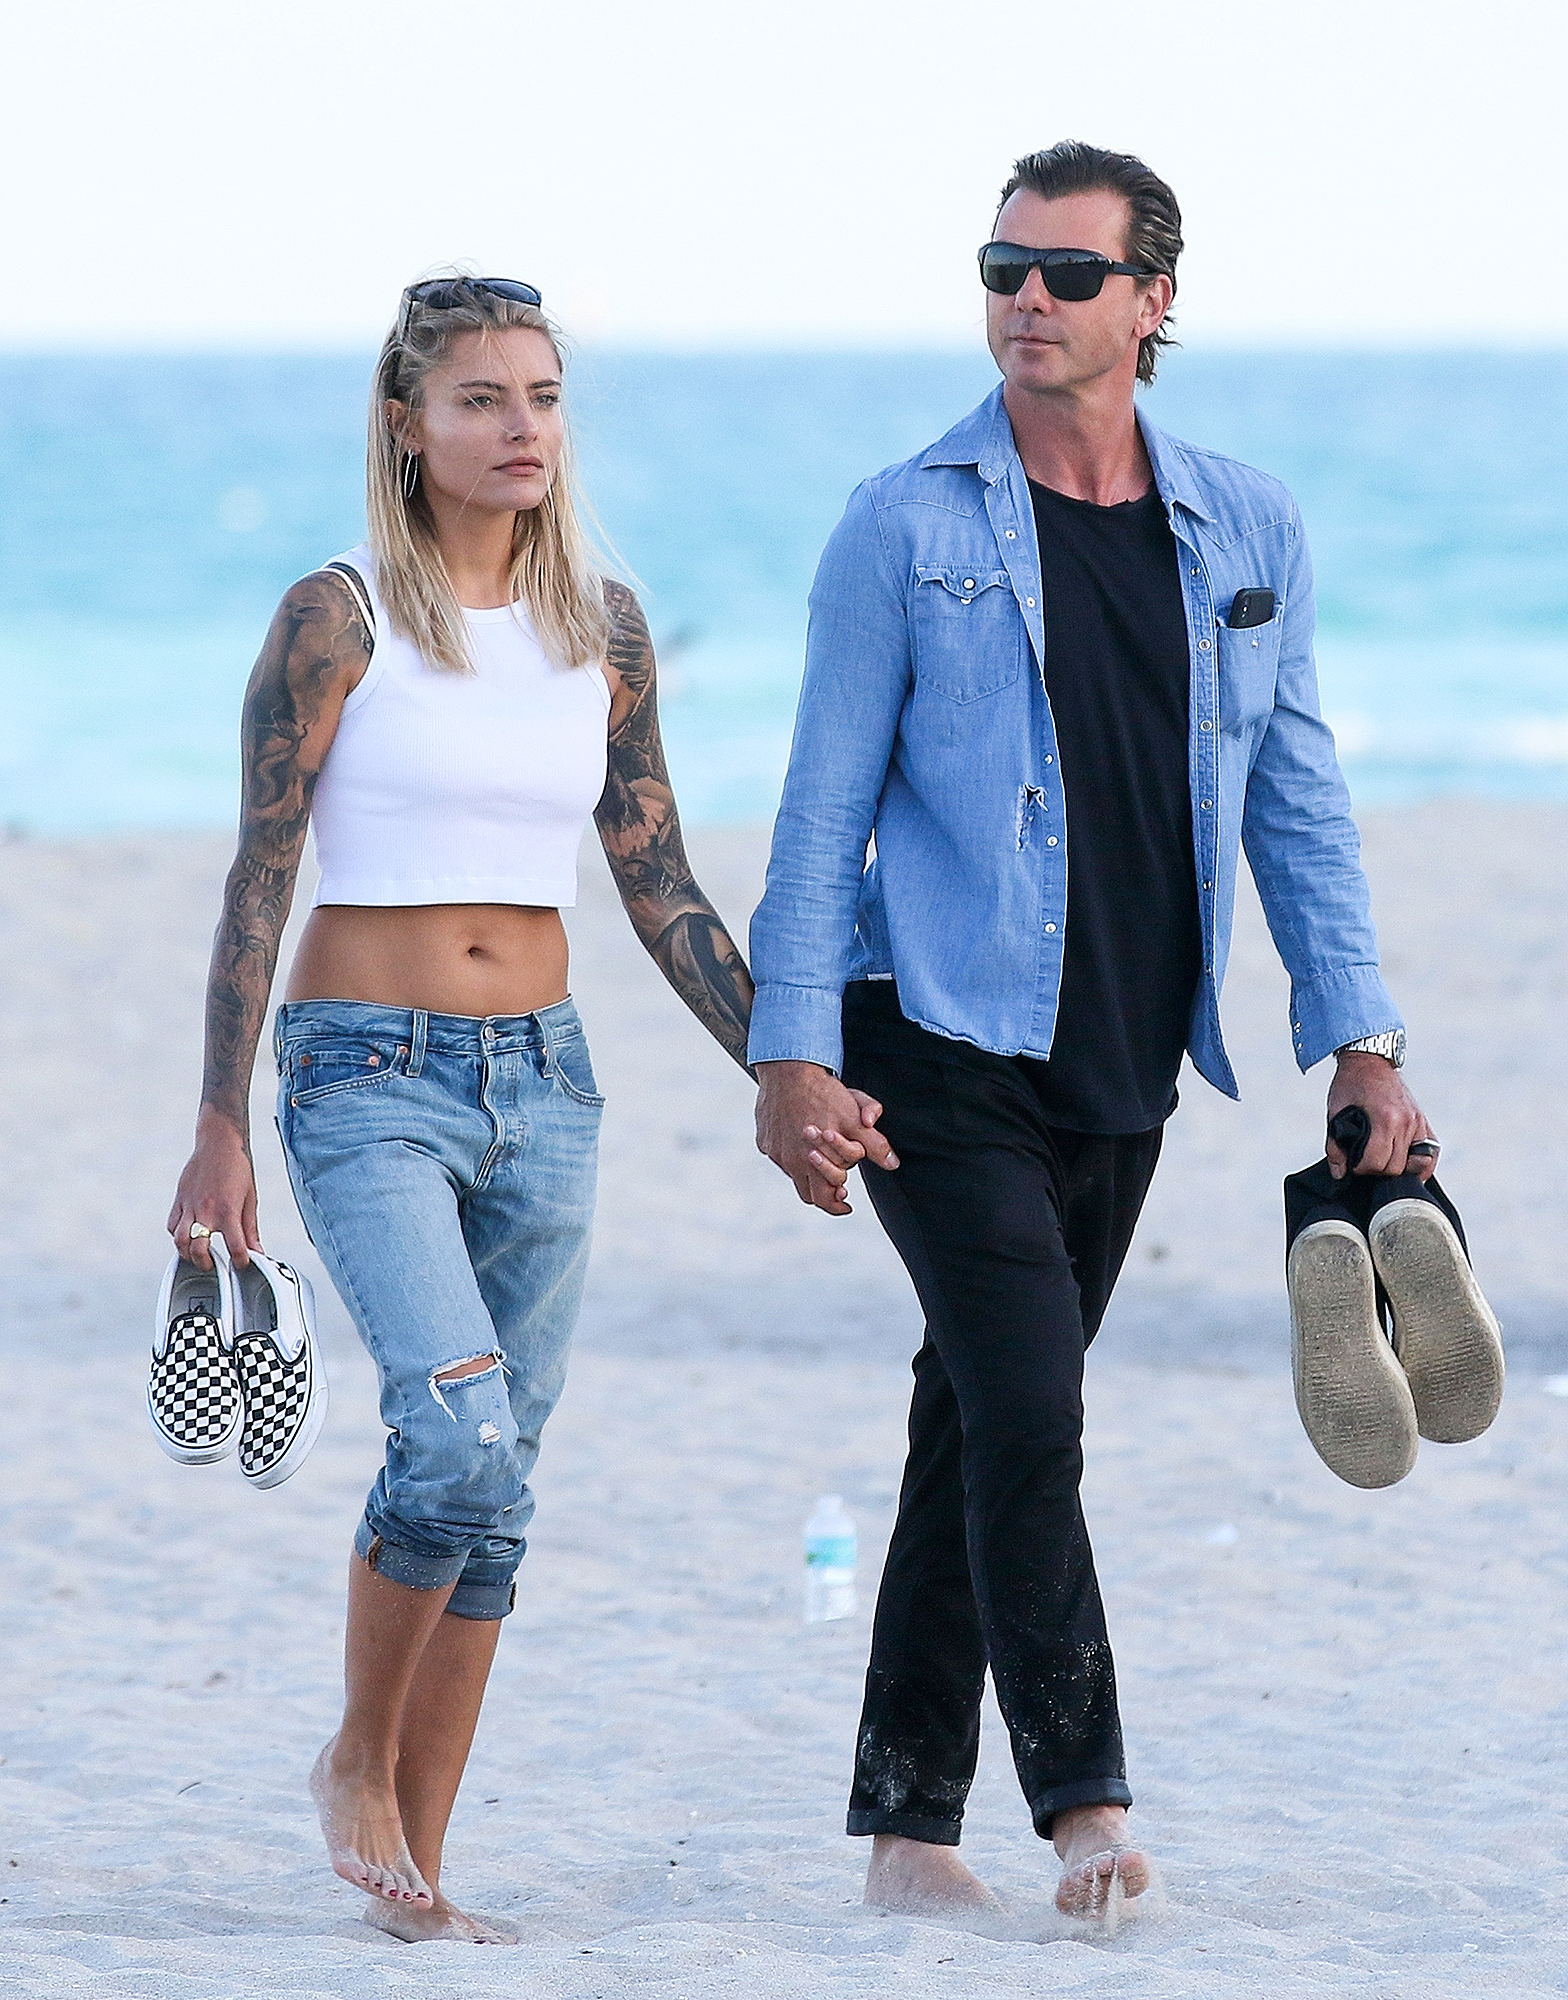 *EXCLUSIVE* Gavin Rossdale and girlfriend Sophia Thomalla pack on the PDA in Miami